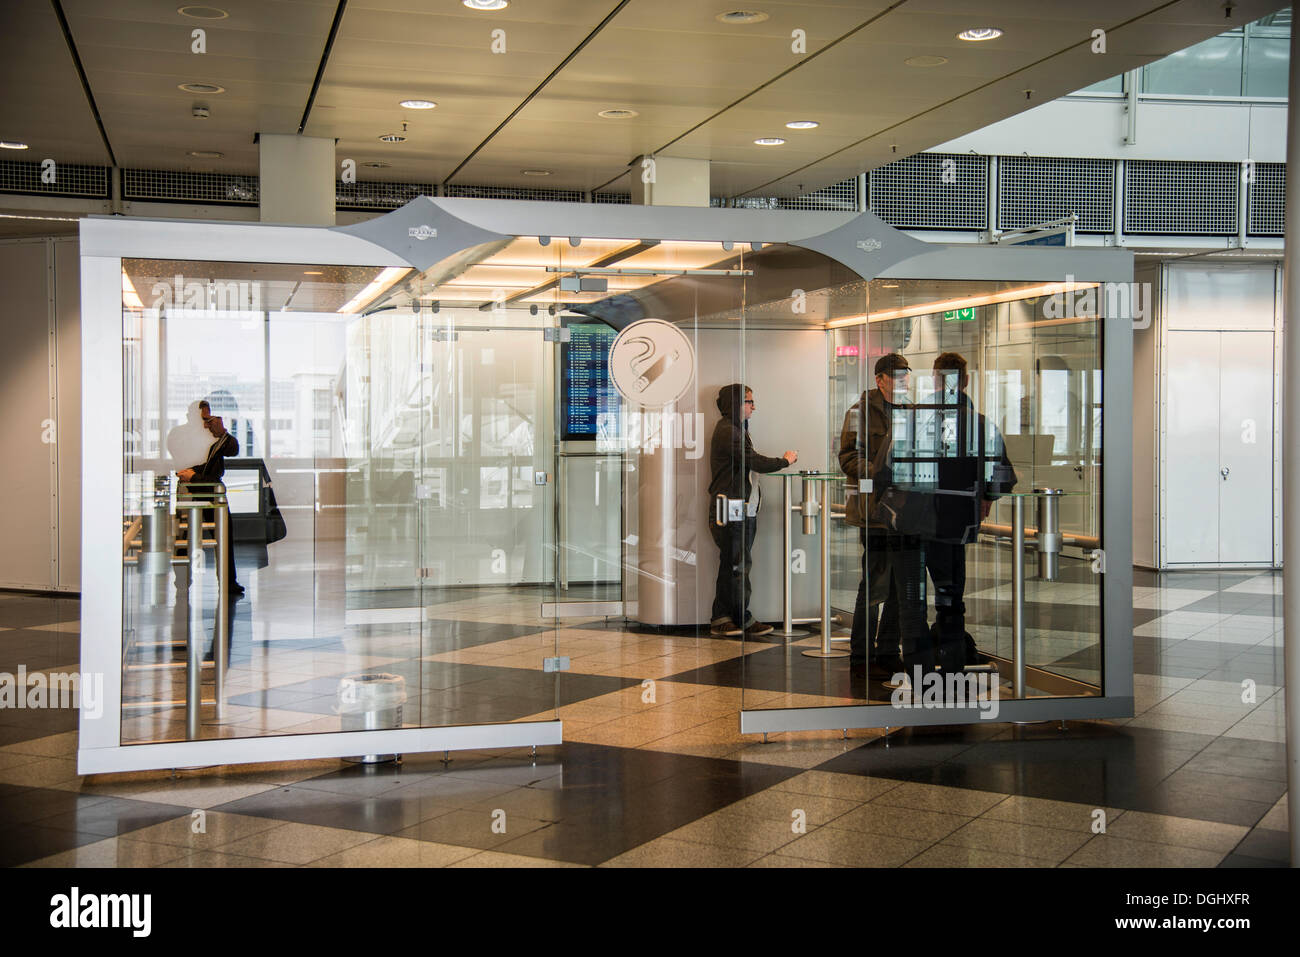 Smokers' cubicle, Franz-Josef-Strauss Airport, Munich, Upper Bavaria, Bavaria, Germany - Stock Image